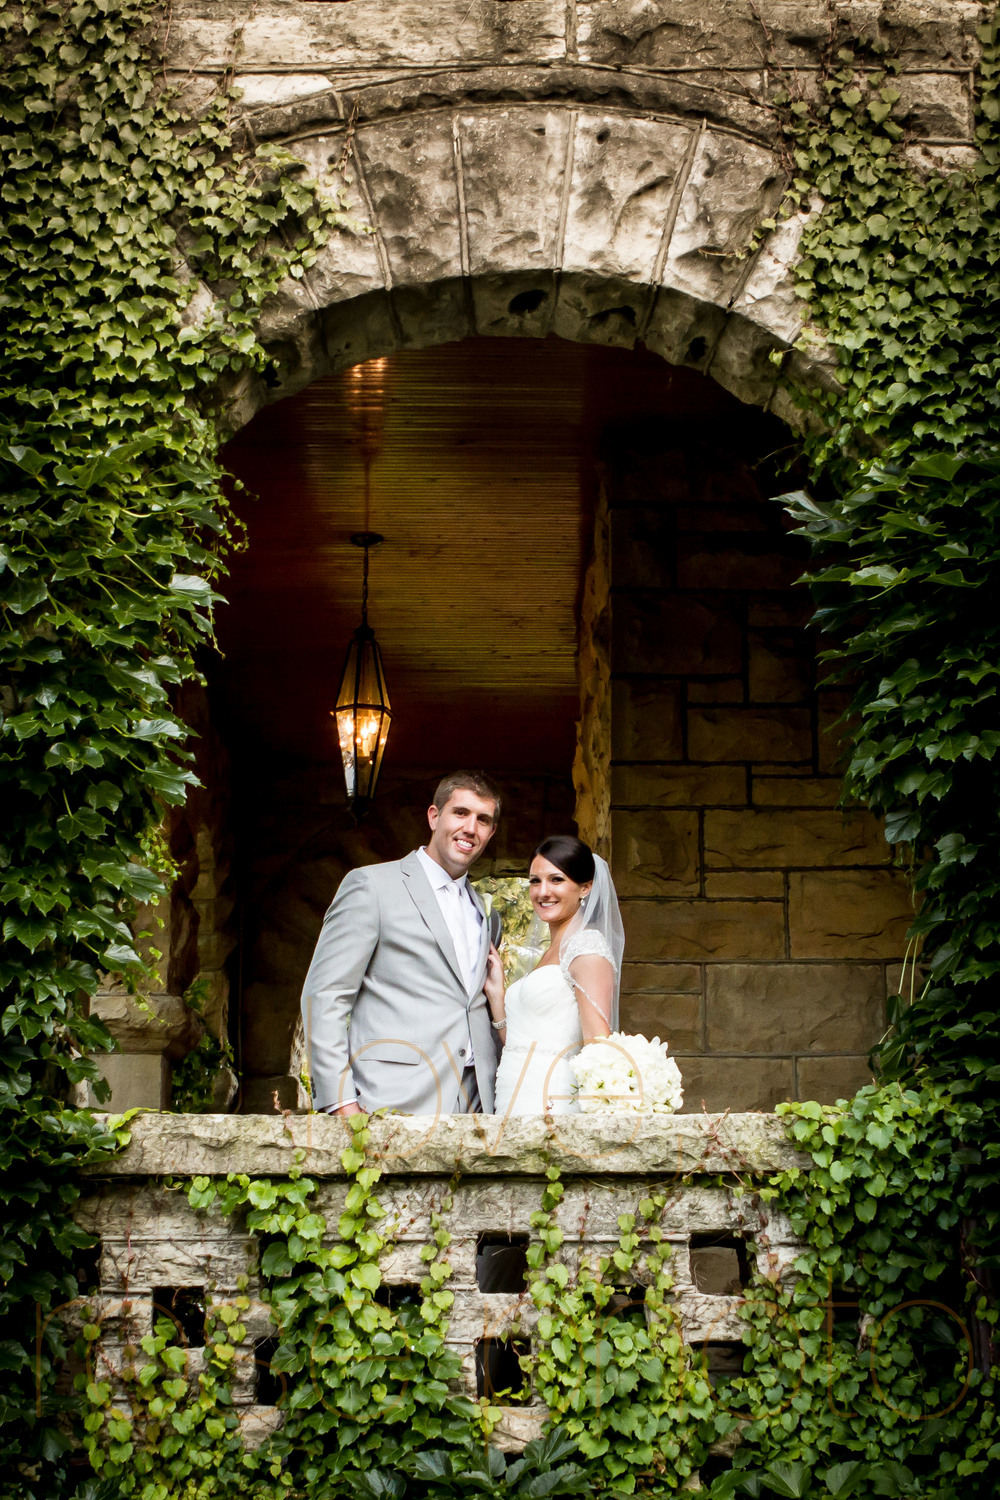 ellen + bryan chicago wedding joliet james healy mansion portrait lifestyle photojournalist photographer -016.jpg